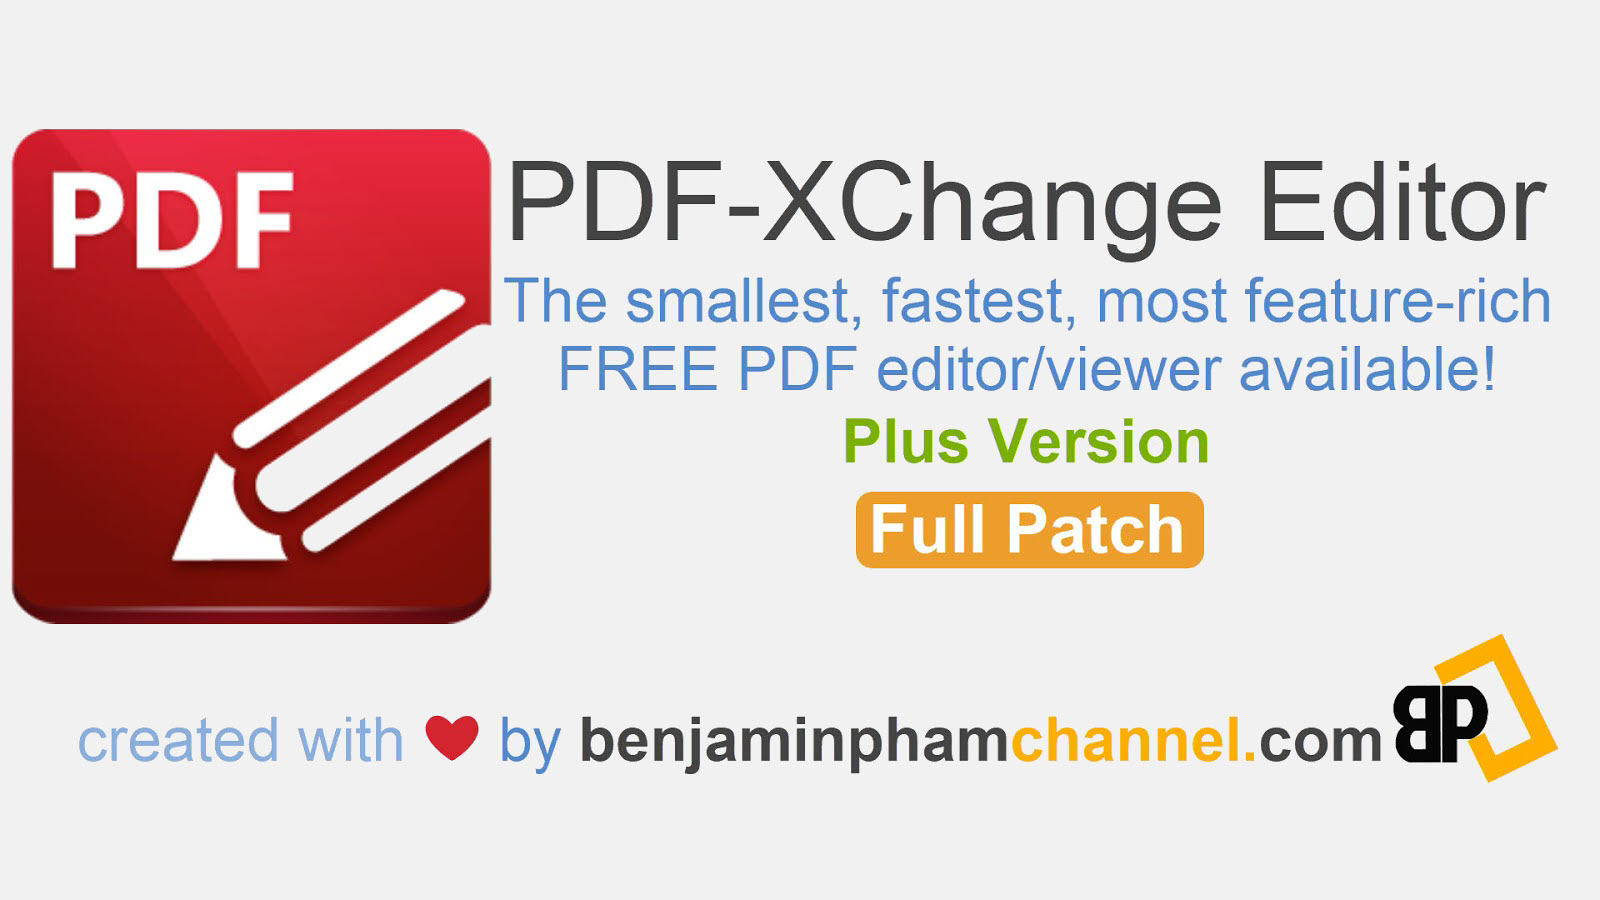 PDF-XChange Editor Plus 7.0.327.1 + Portable